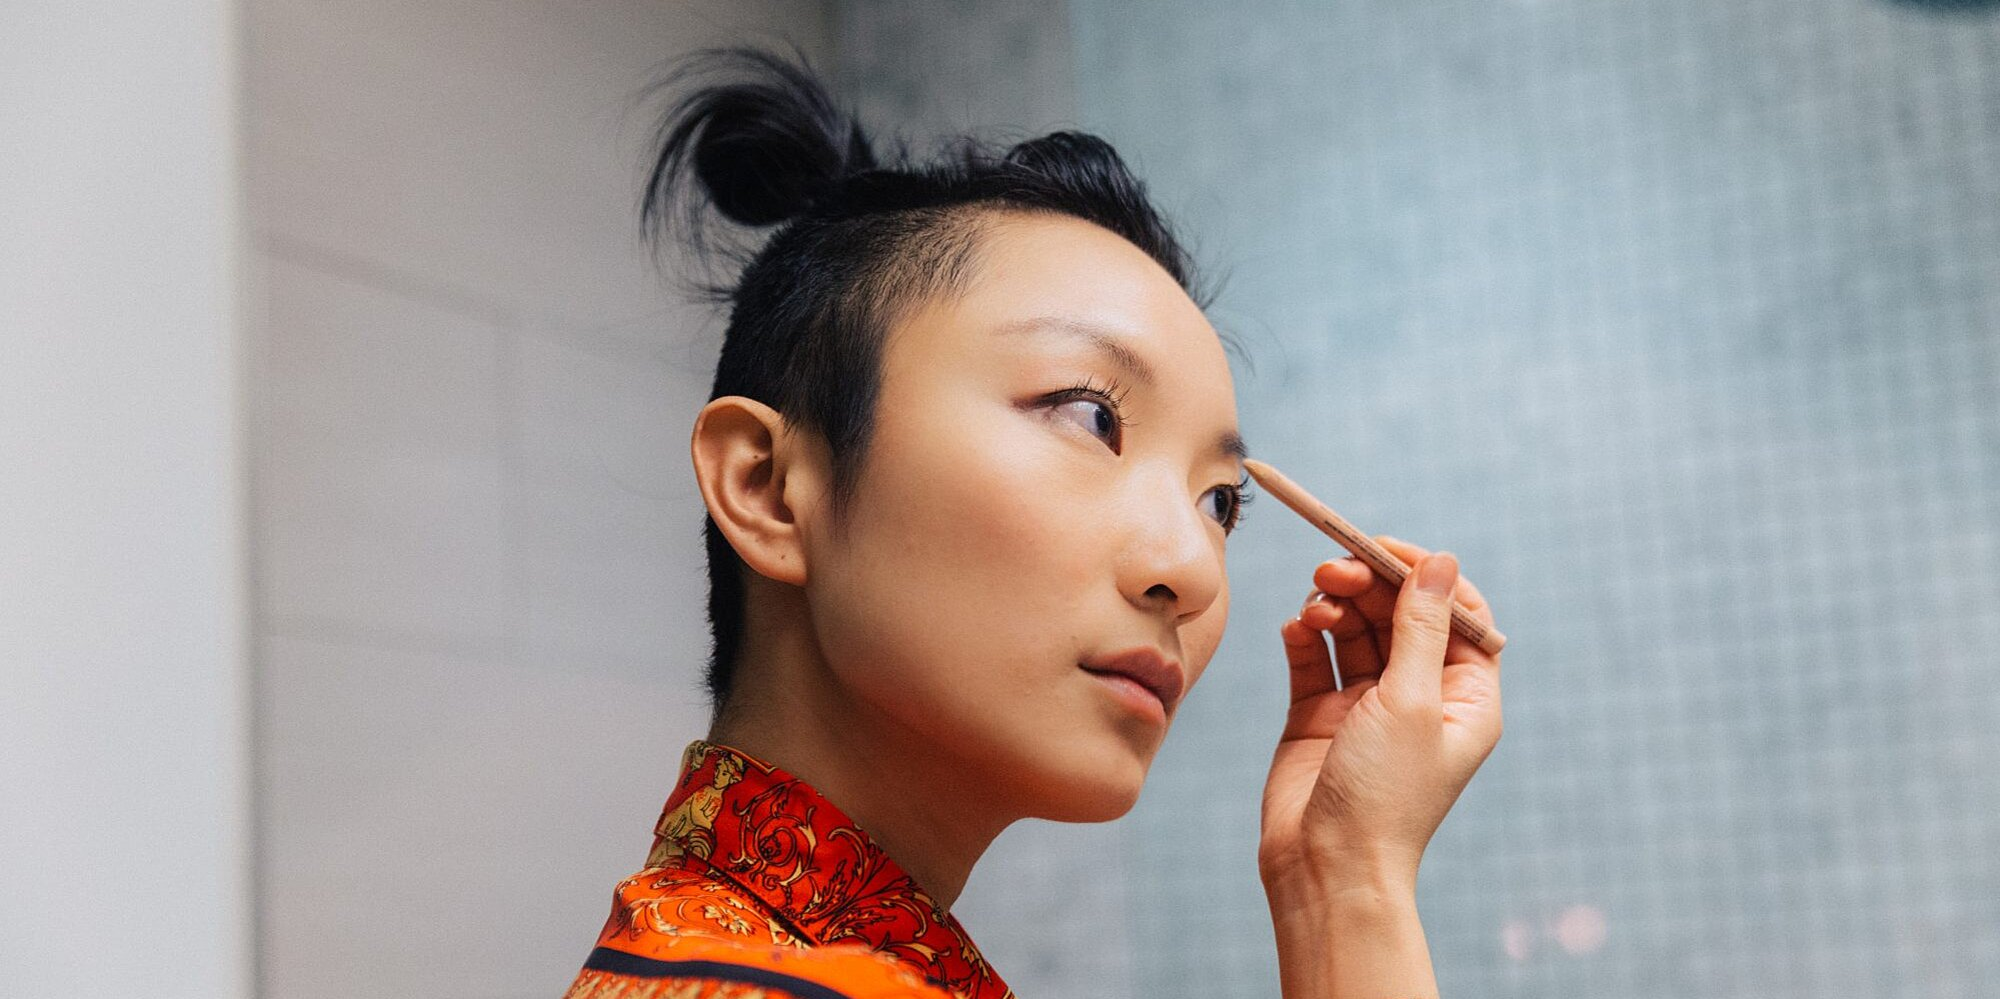 Makeup Tricks for Looking Polished and Put Together in a Hurry